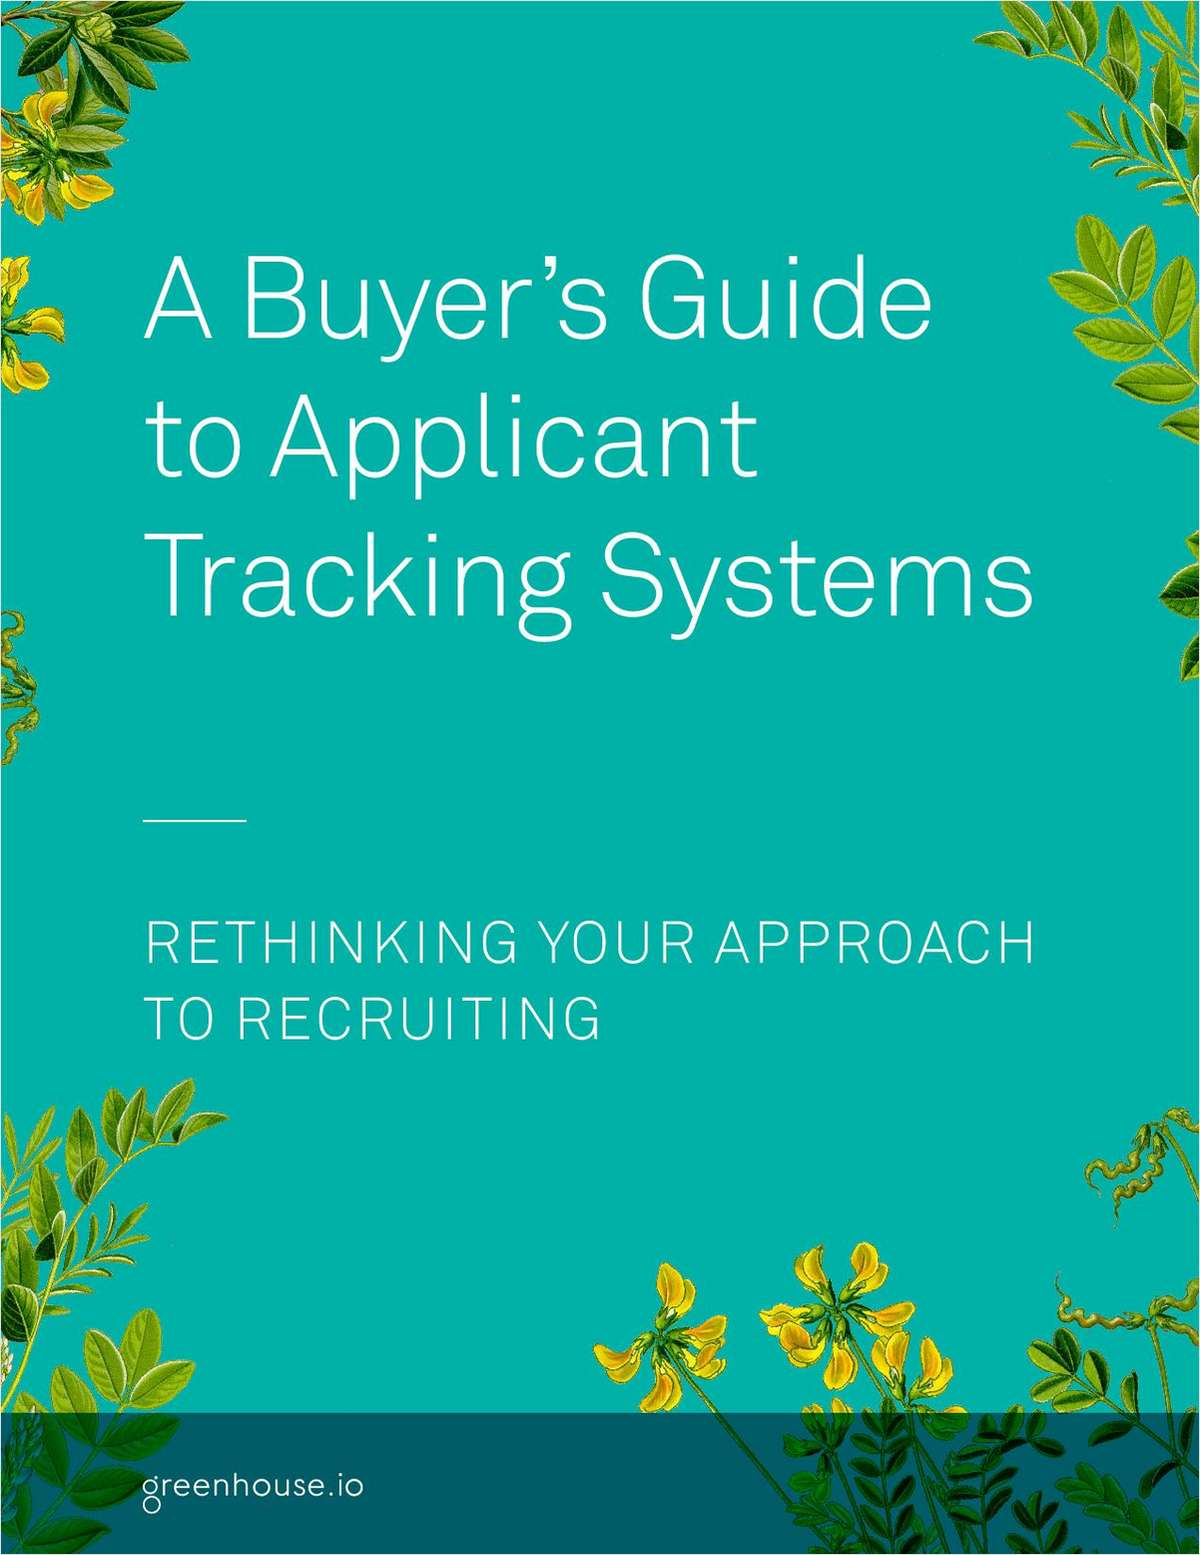 A Buyer's Guide for a Modern Applicant Tracking System